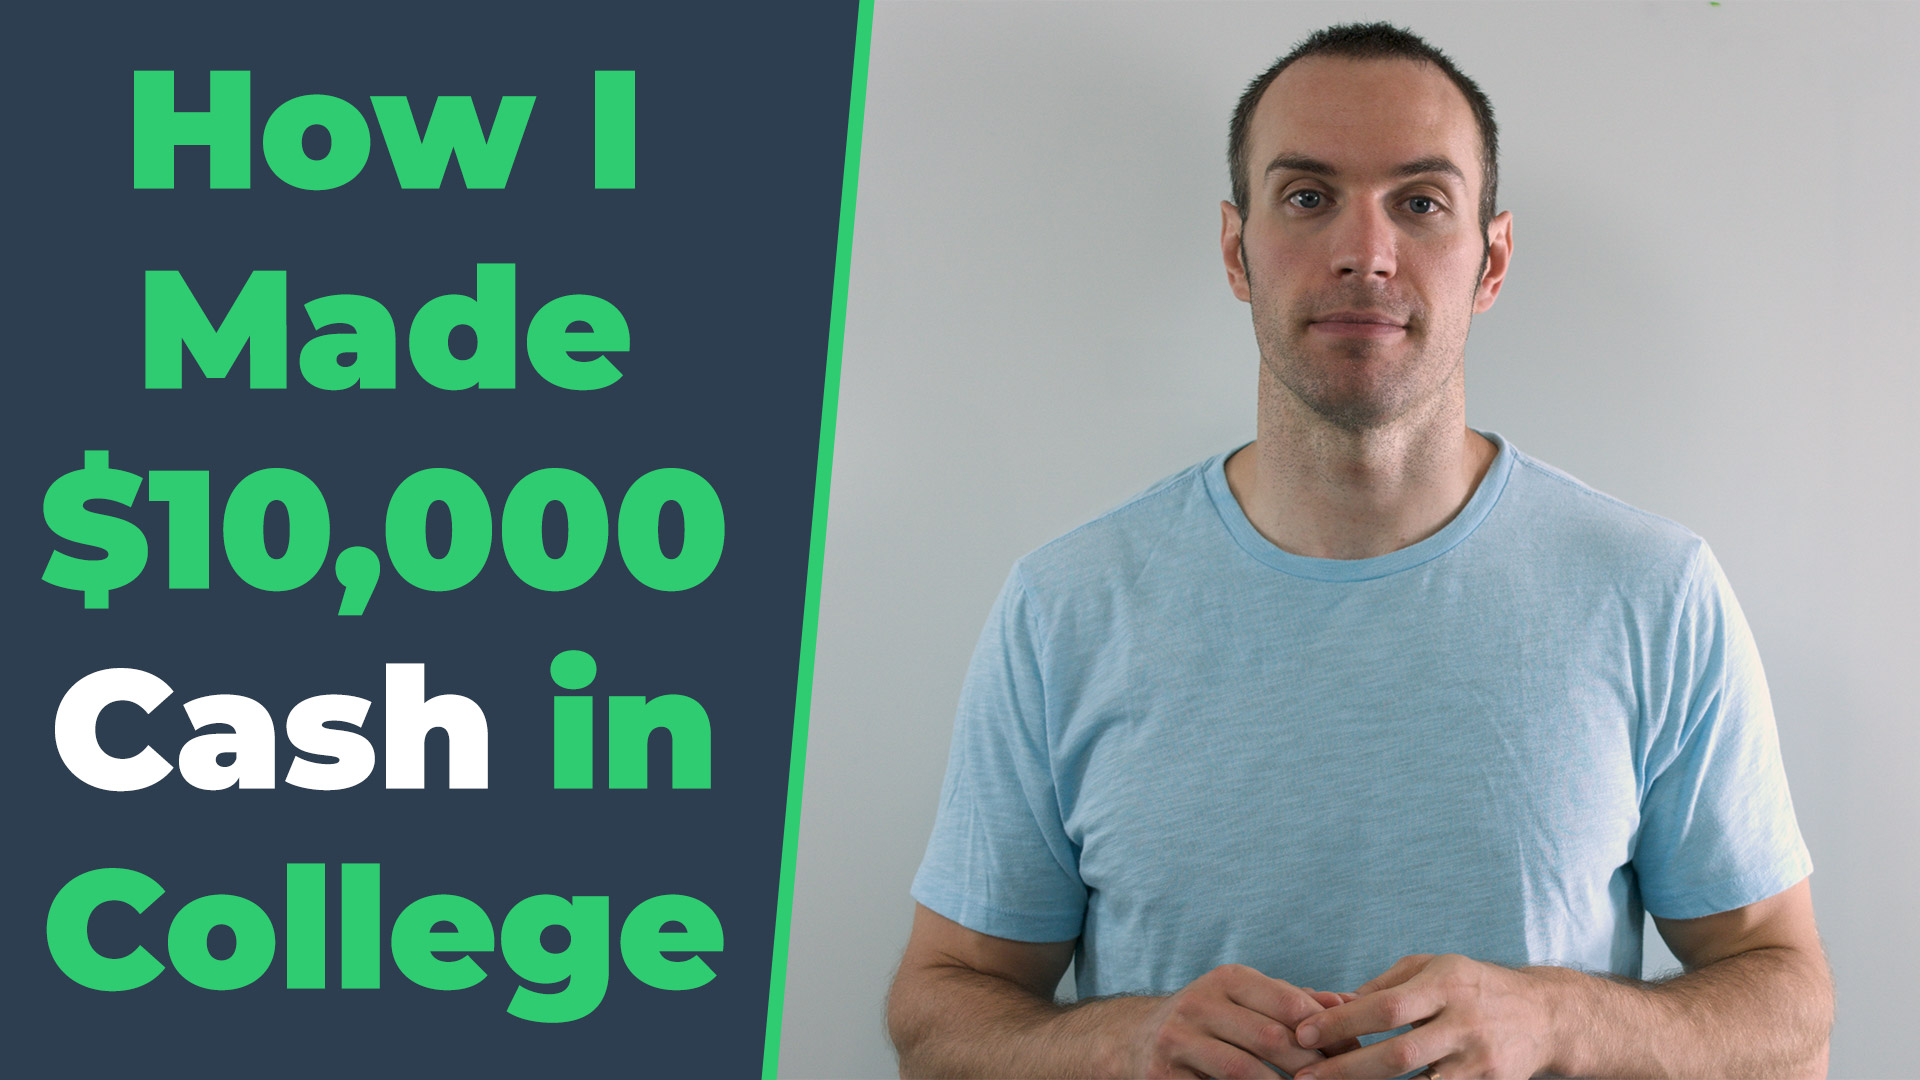 How I Made $10,000 Cash in College